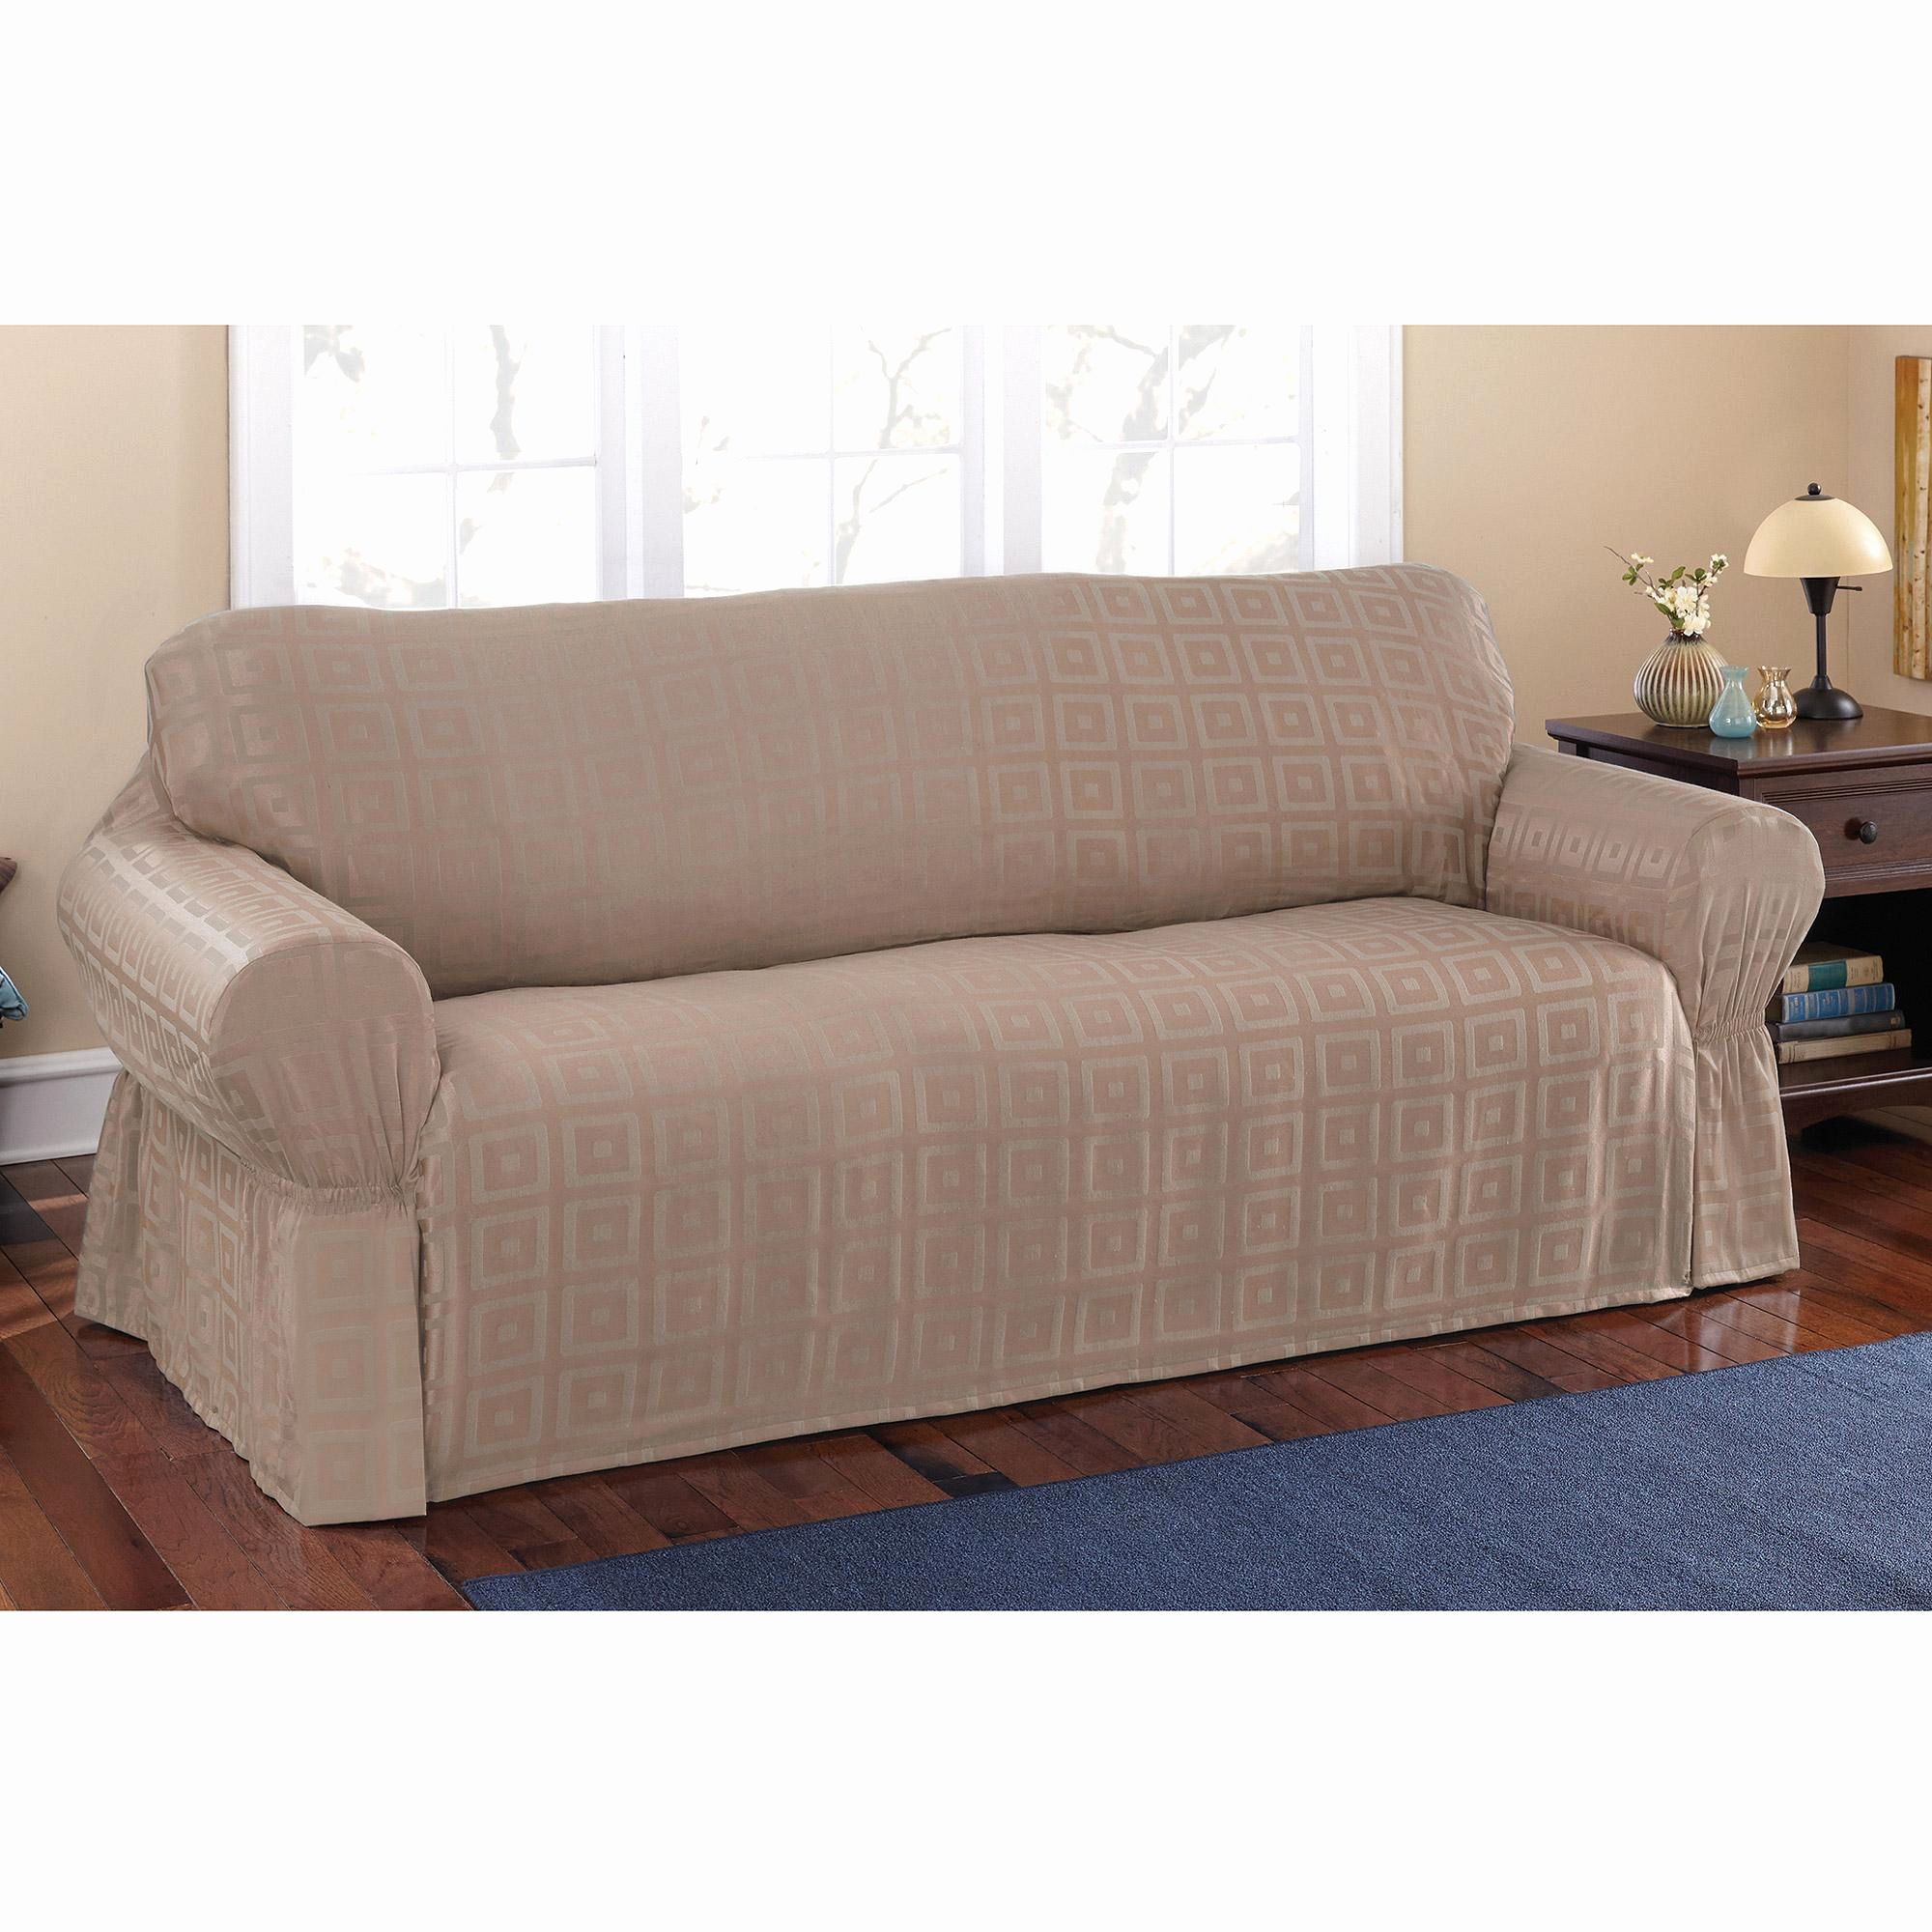 Inspirational Cover Sofa Walmart Shot Cover Sofa Walmart Luxury Decorating Sectional Covers Walmart Sofa Covers Walmart Sofa Covers Sofa Slipcovers For Chairs